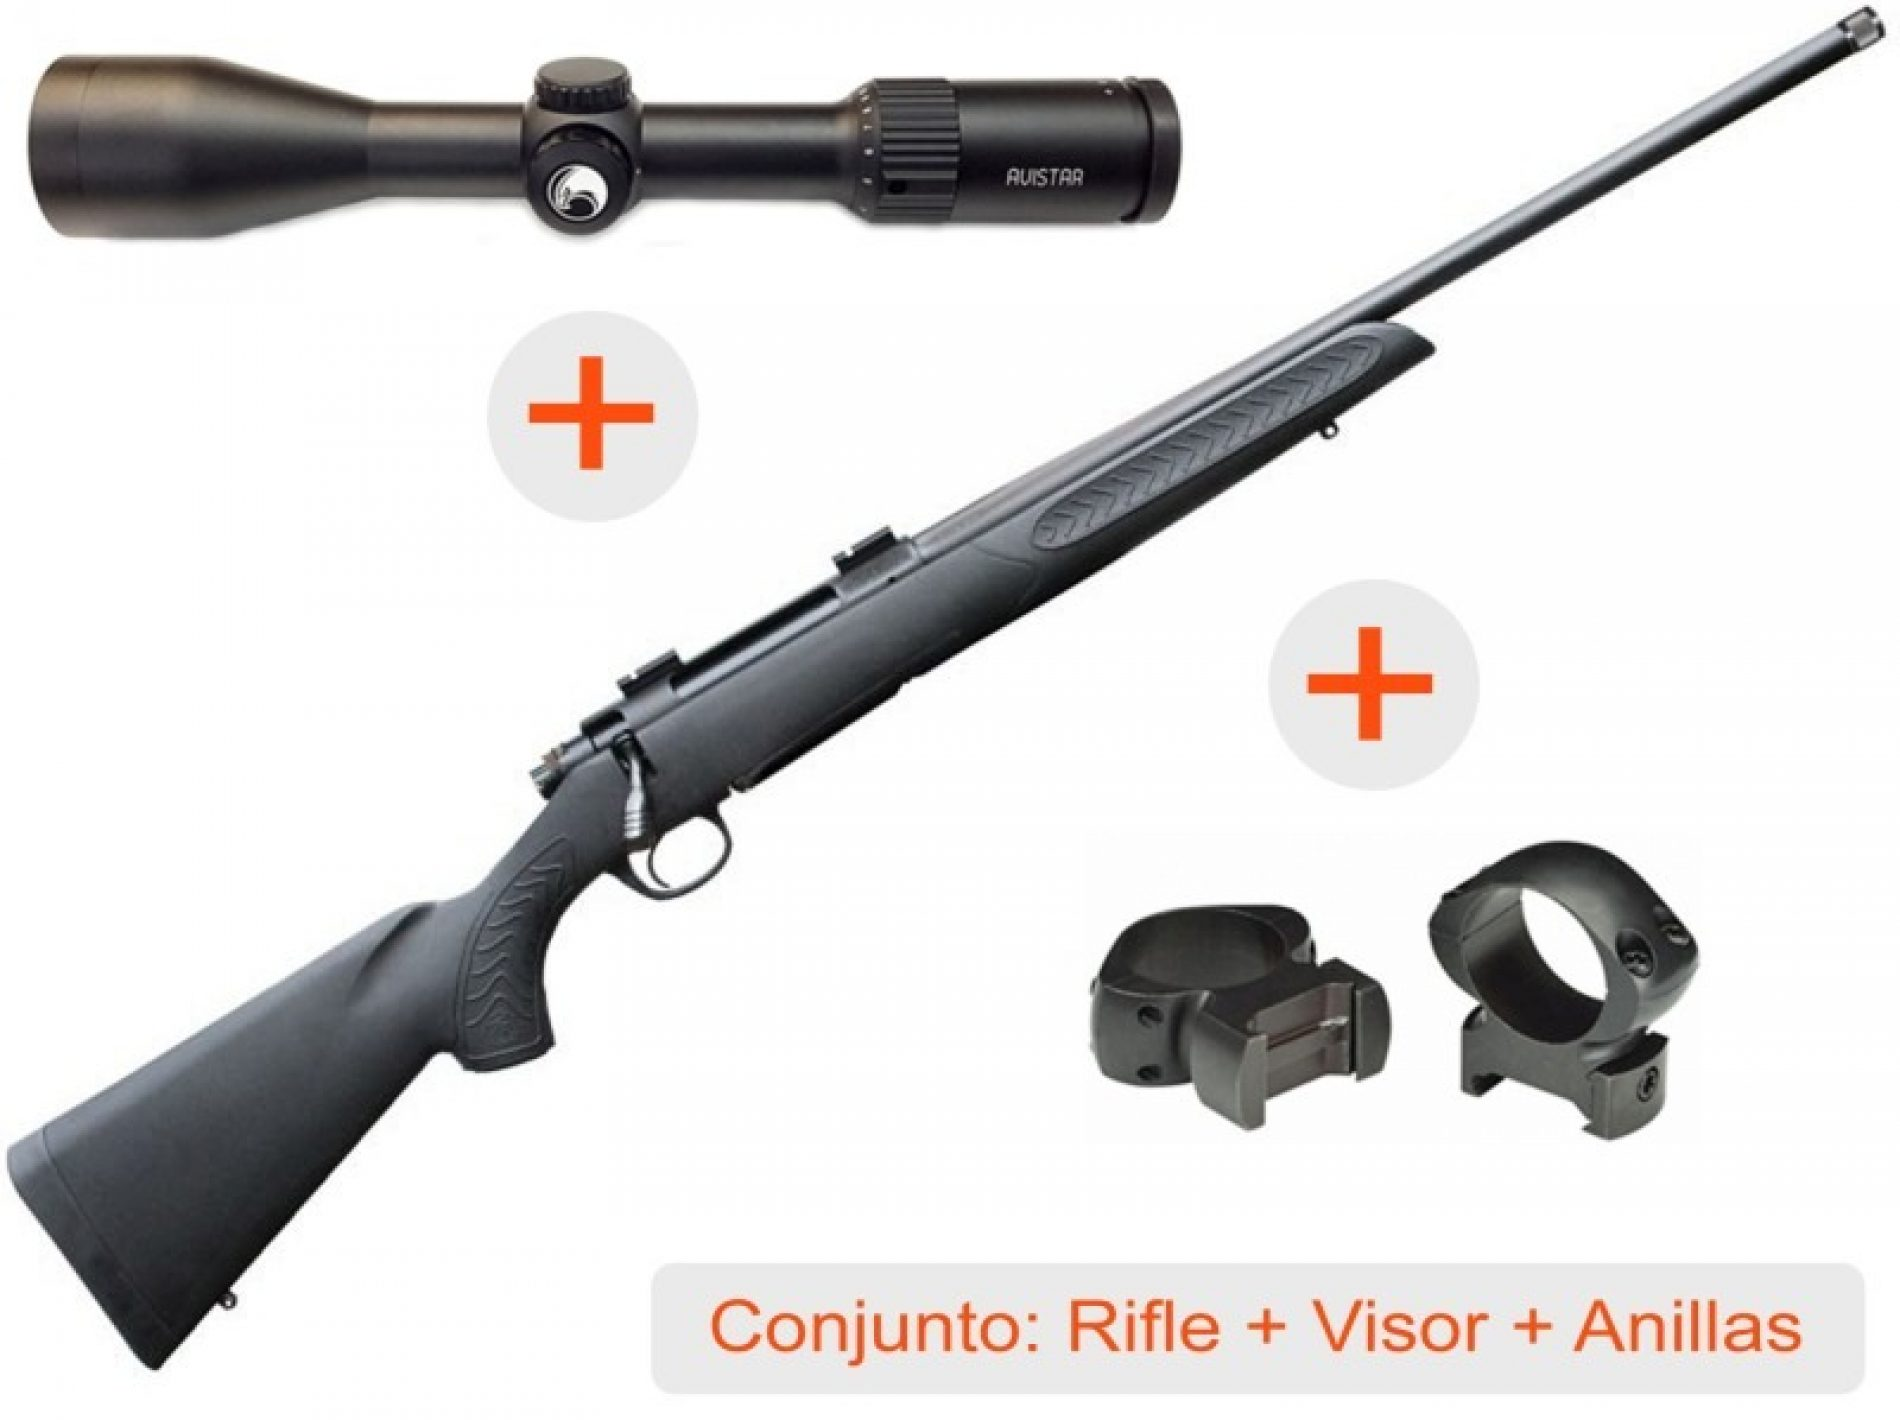 Increíble oferta de Borchers, Pack Rifle + Visor + Anillas